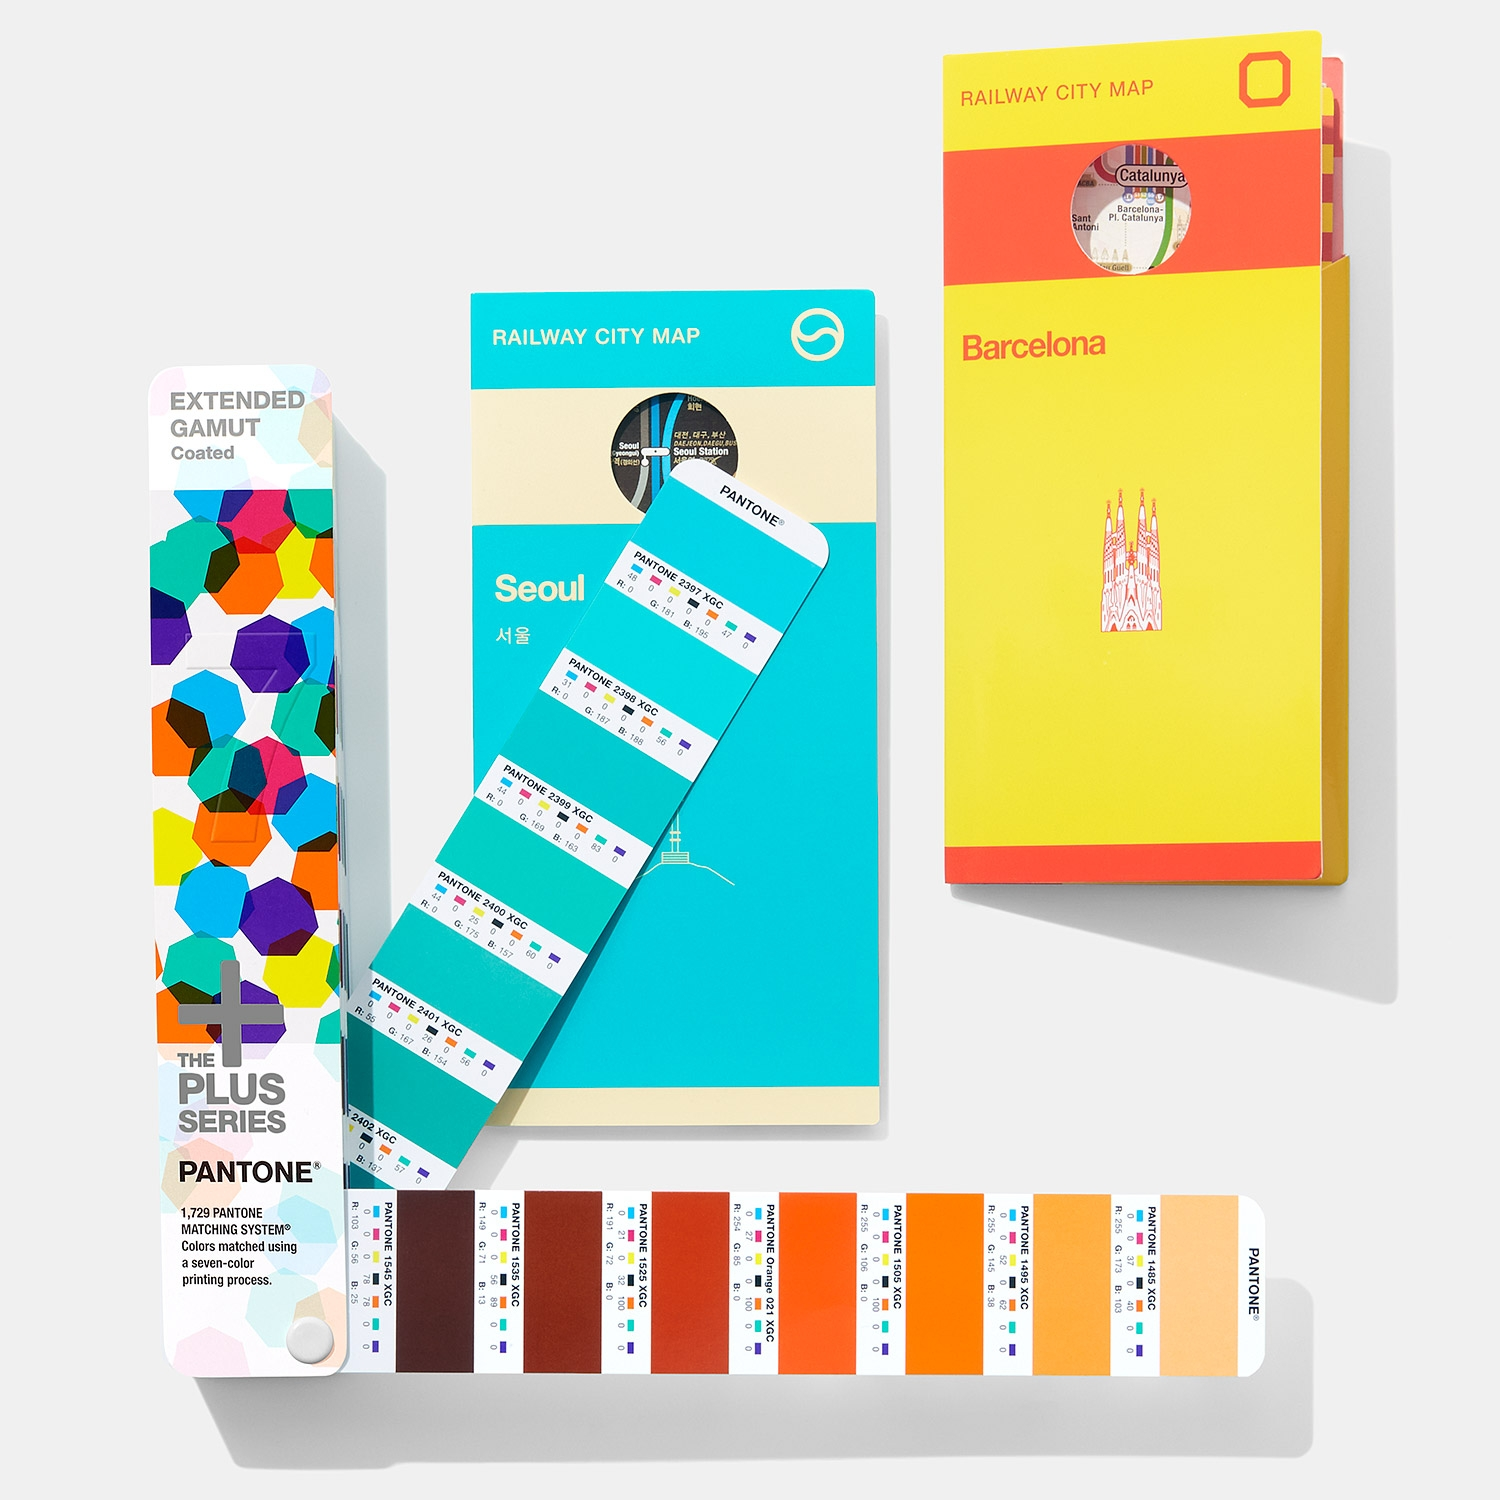 GG7000-pantone-pms-7-color-process-printing-cmyk-orange-green-purple-fan-guide-extended-gamut-coated-guide-product-2.jpg